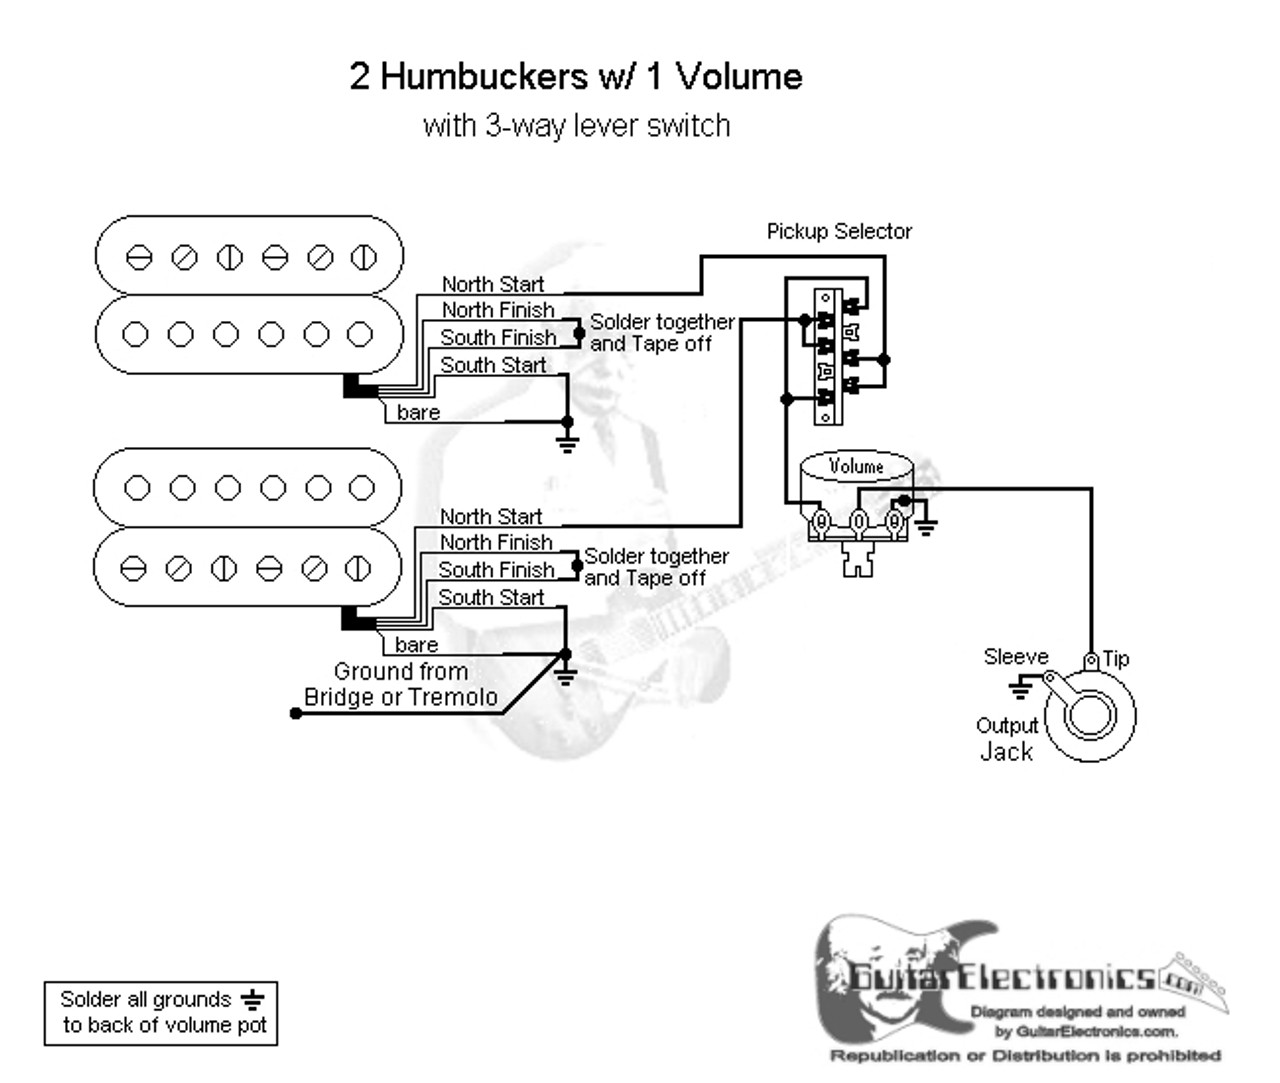 2 humbuckers 3 way lever switch 1 volume guitar wiring diagram 2 humbuckers 3 way switch humbucker wire [ 1280 x 1083 Pixel ]